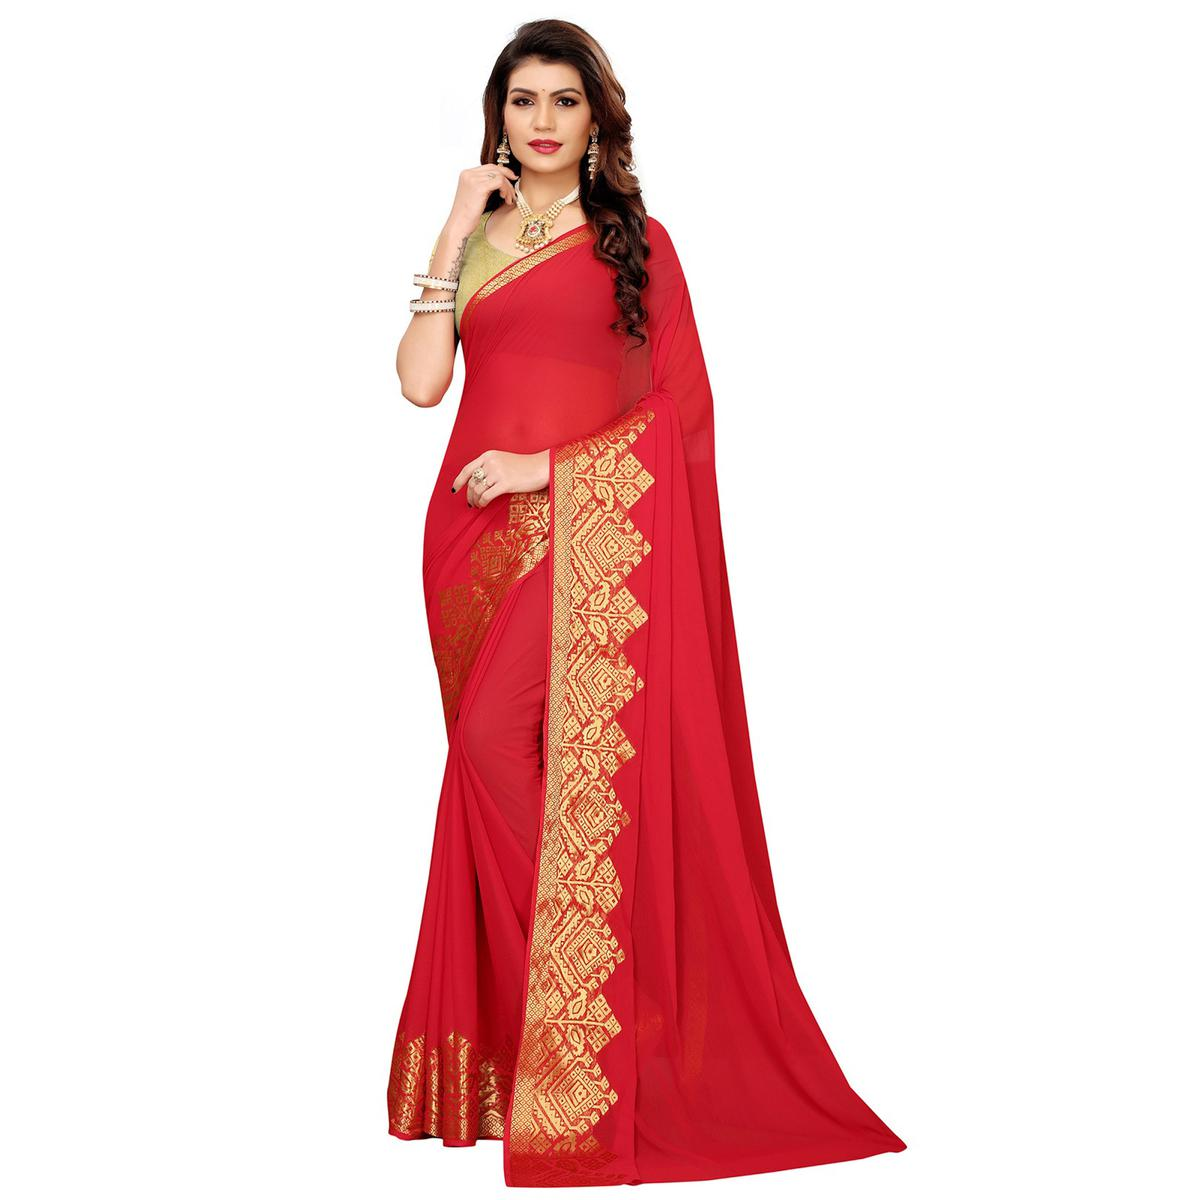 Majesty Red Colored Casual Woven Georgette Saree